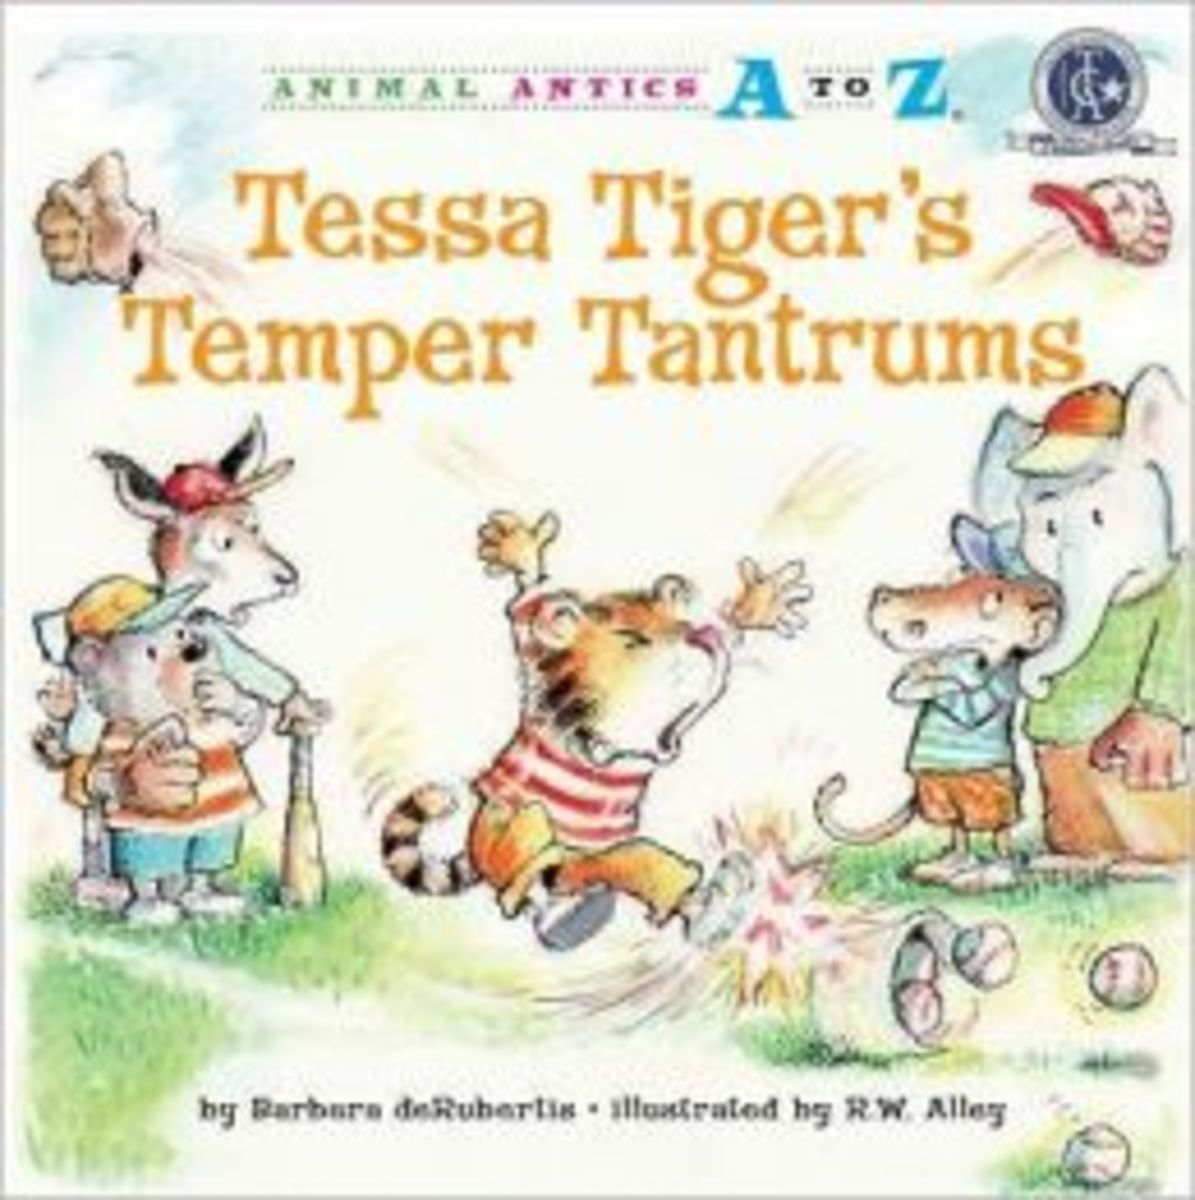 Books Coping with Temper Tantrums: Tessa Tiger's Temper Tantrums